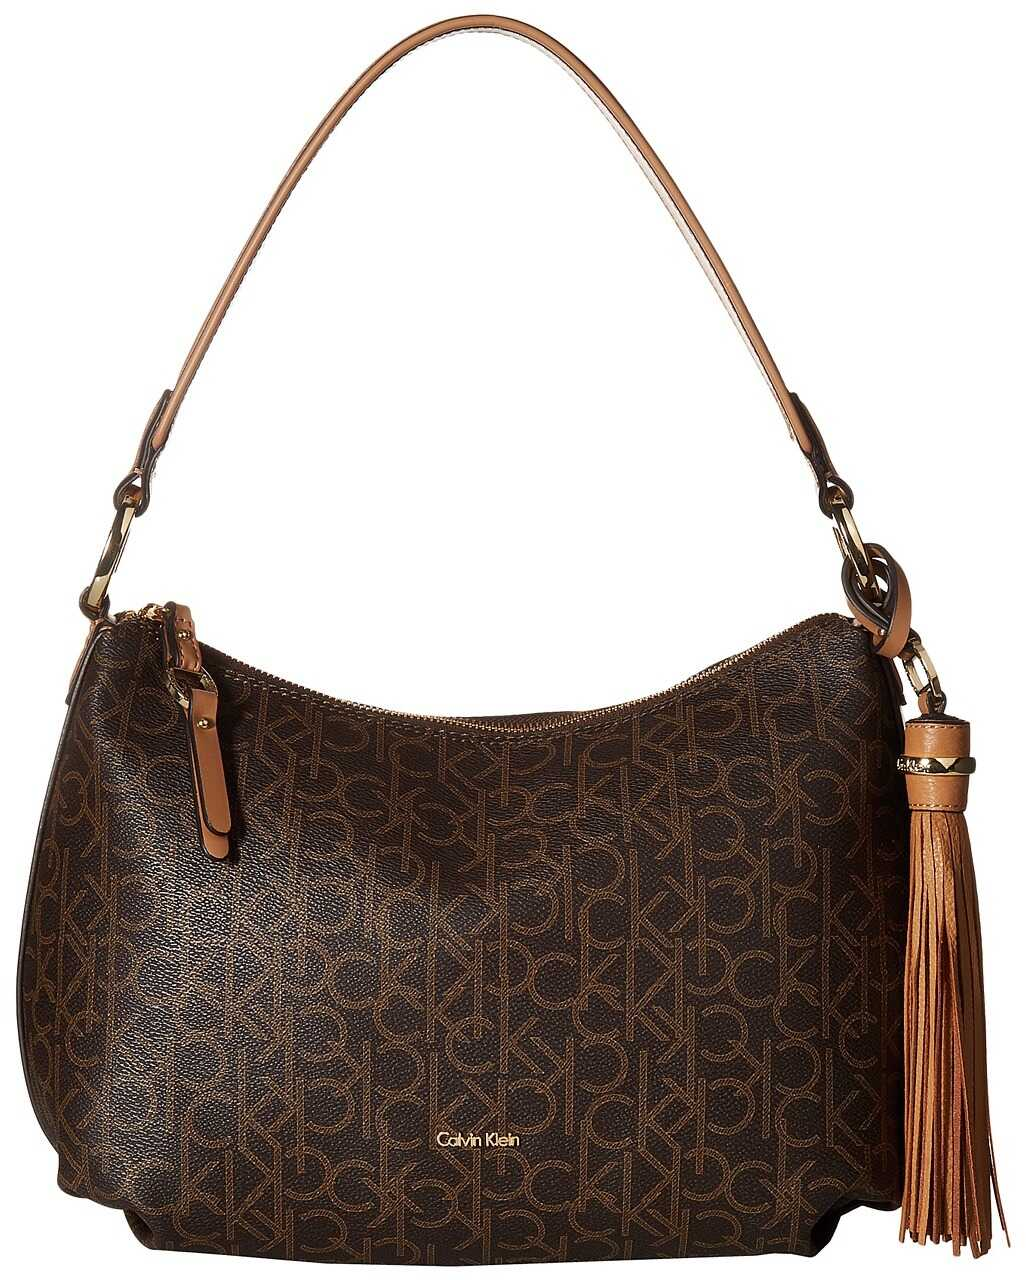 Calvin Klein Monogram Hobo Brown/Khaki